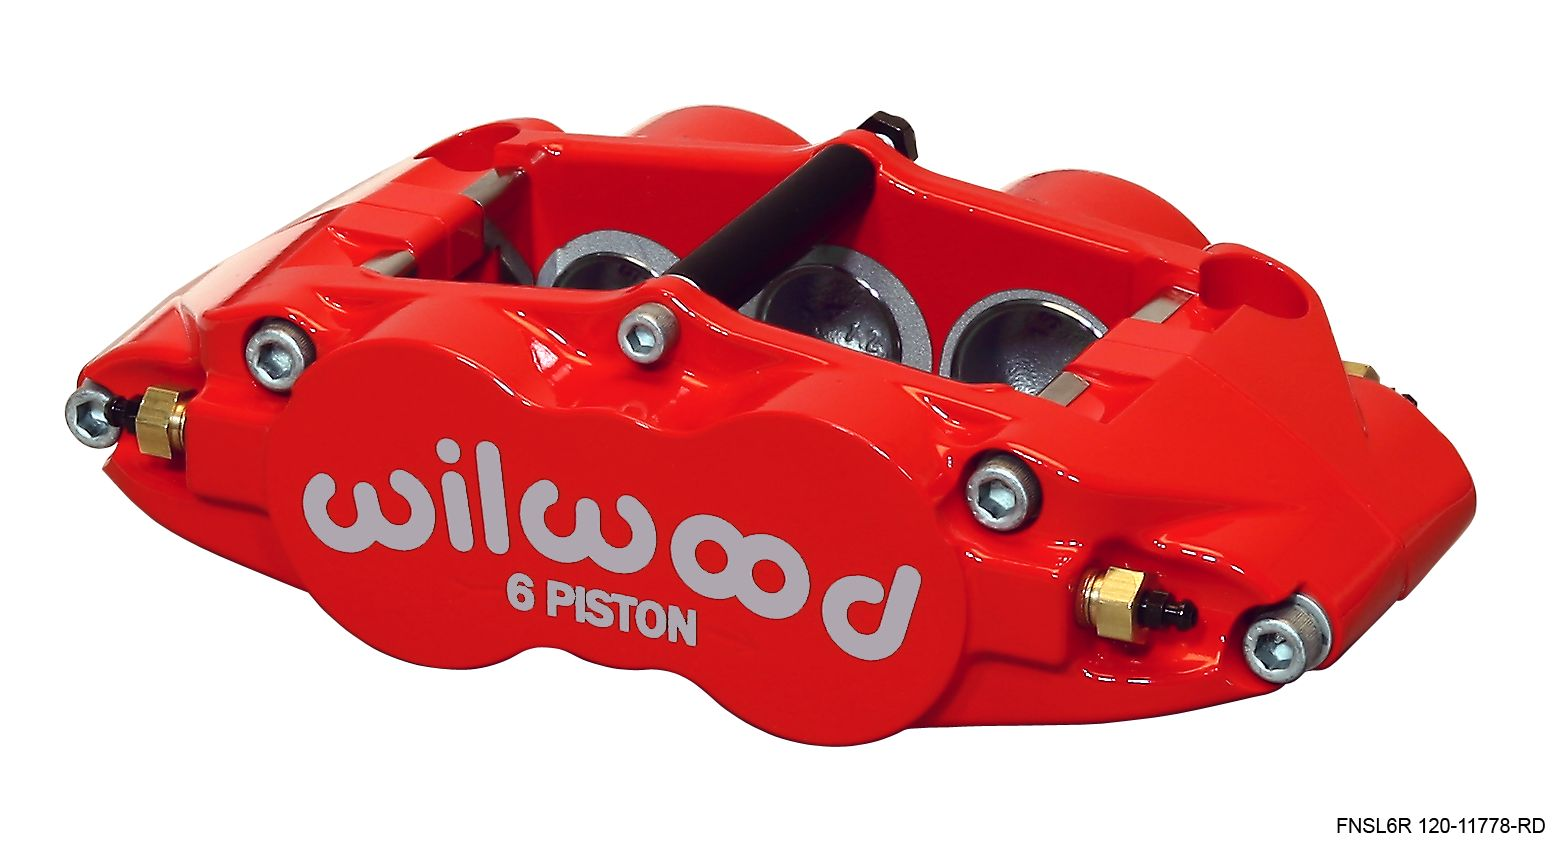 Wilwood Disc Brakes Introduces Their Newly Redesigned Forged Narrow-body Superlite Radial Mount Calipers Series